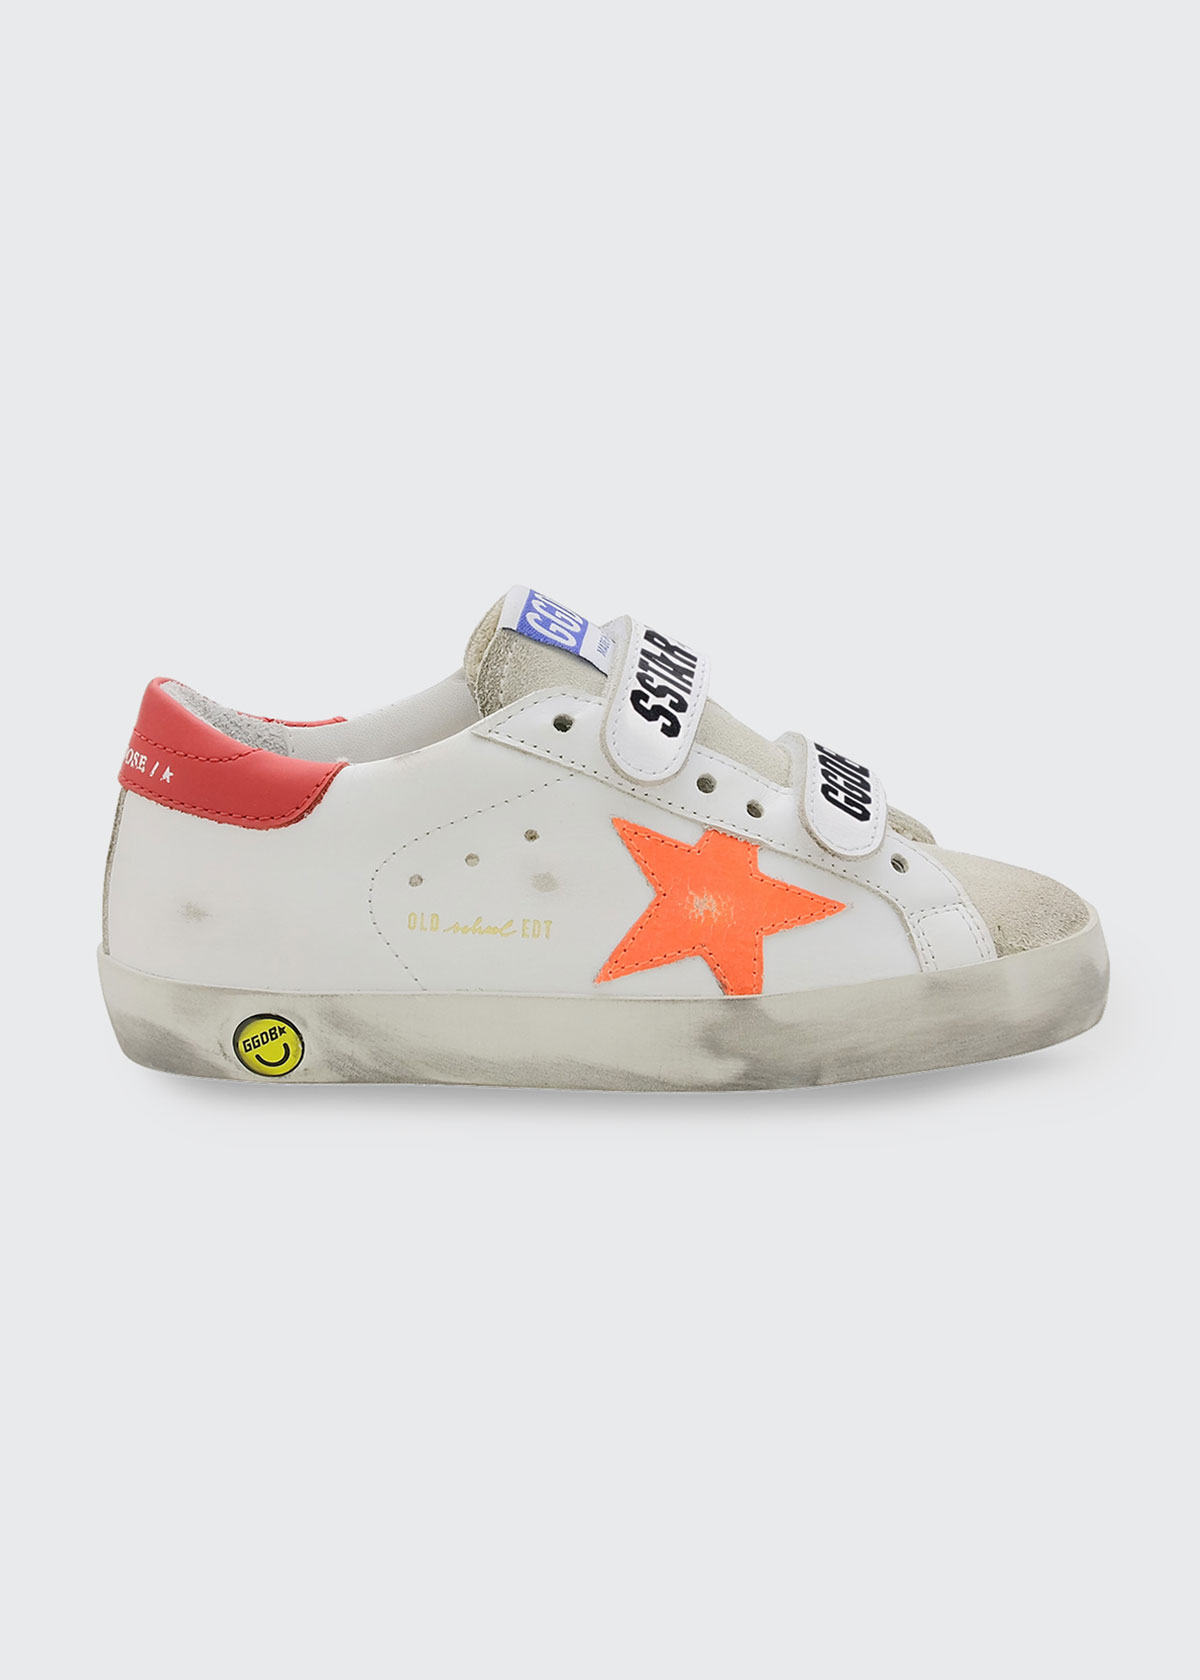 Golden Goose BOY'S LEATHER GRIP-STRAP SNEAKERS, KIDS